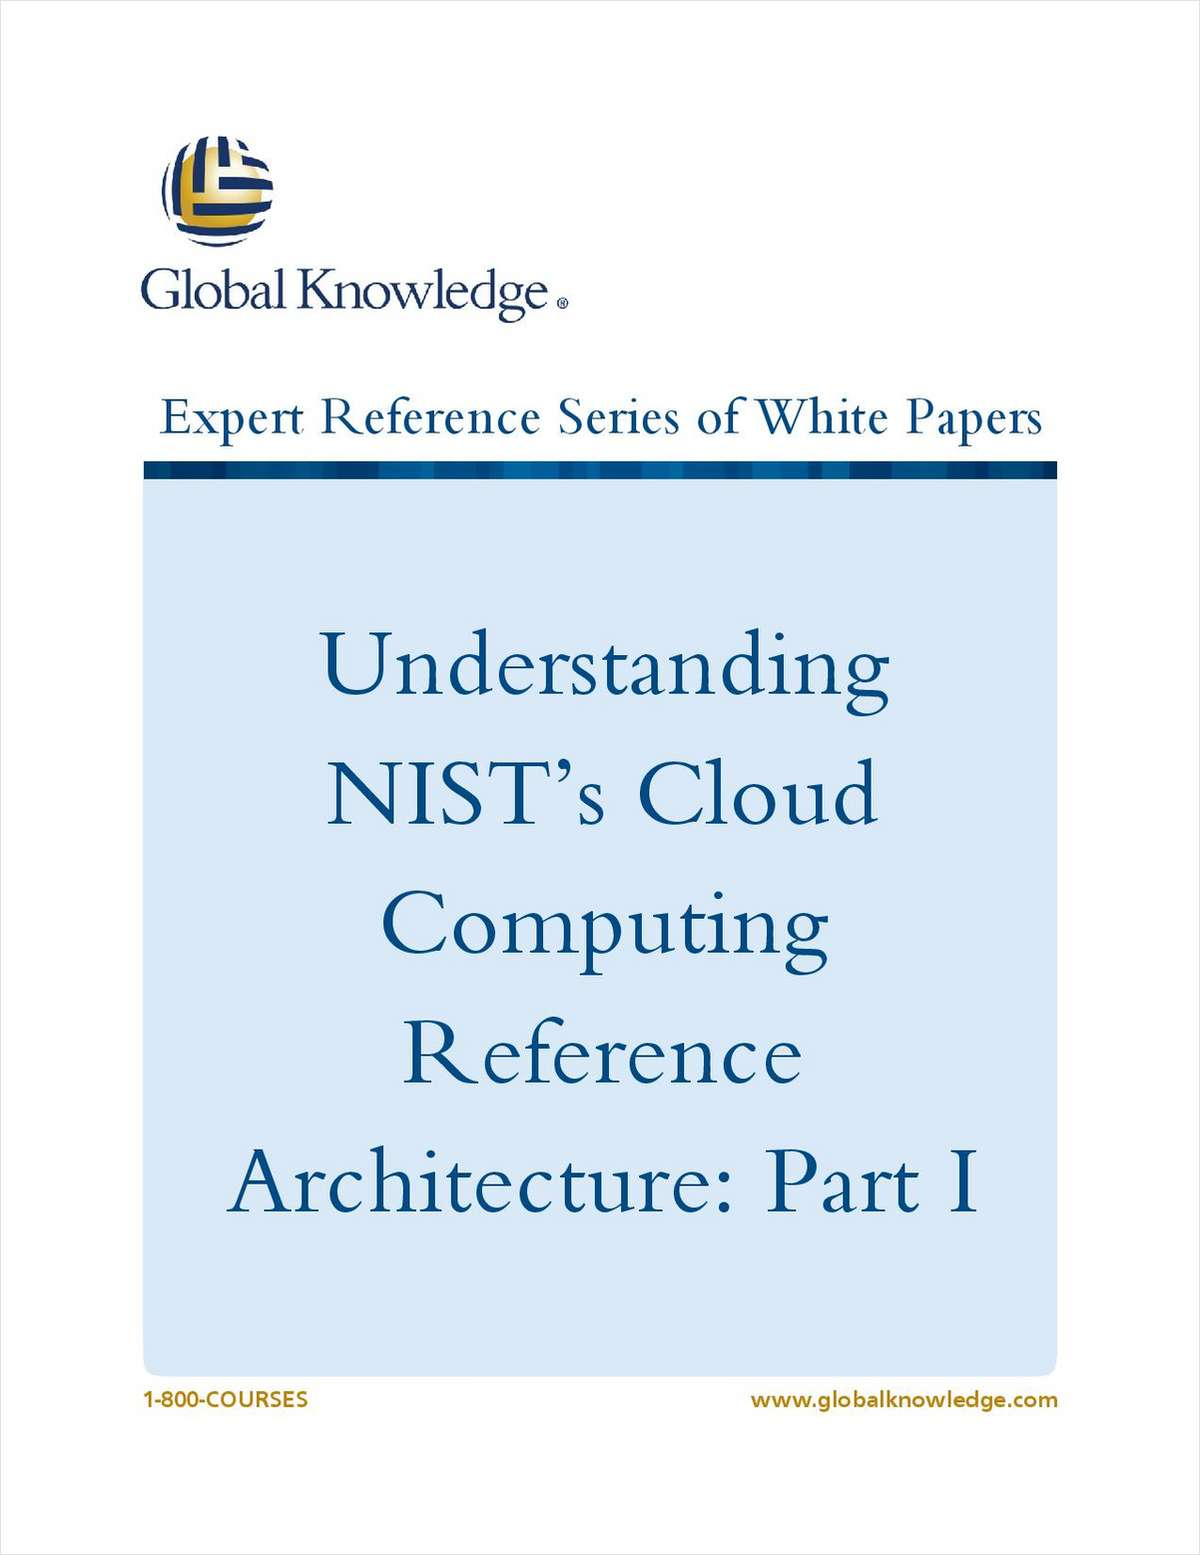 Understanding NIST's Cloud Computing Reference Architecture: Part I